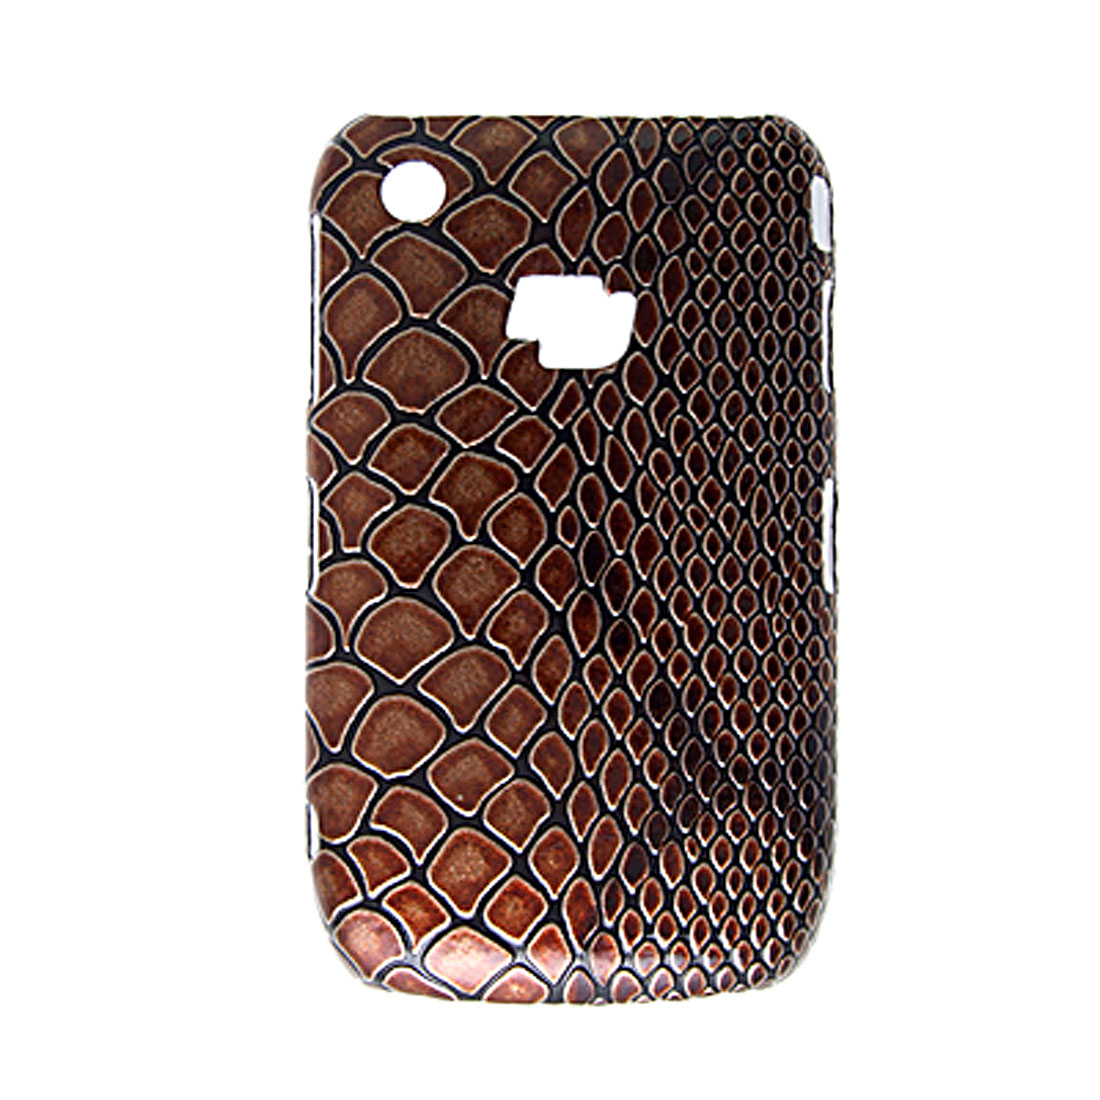 Snake Print Brown Hard Plastic Back Case Skin for Blackberry 8520